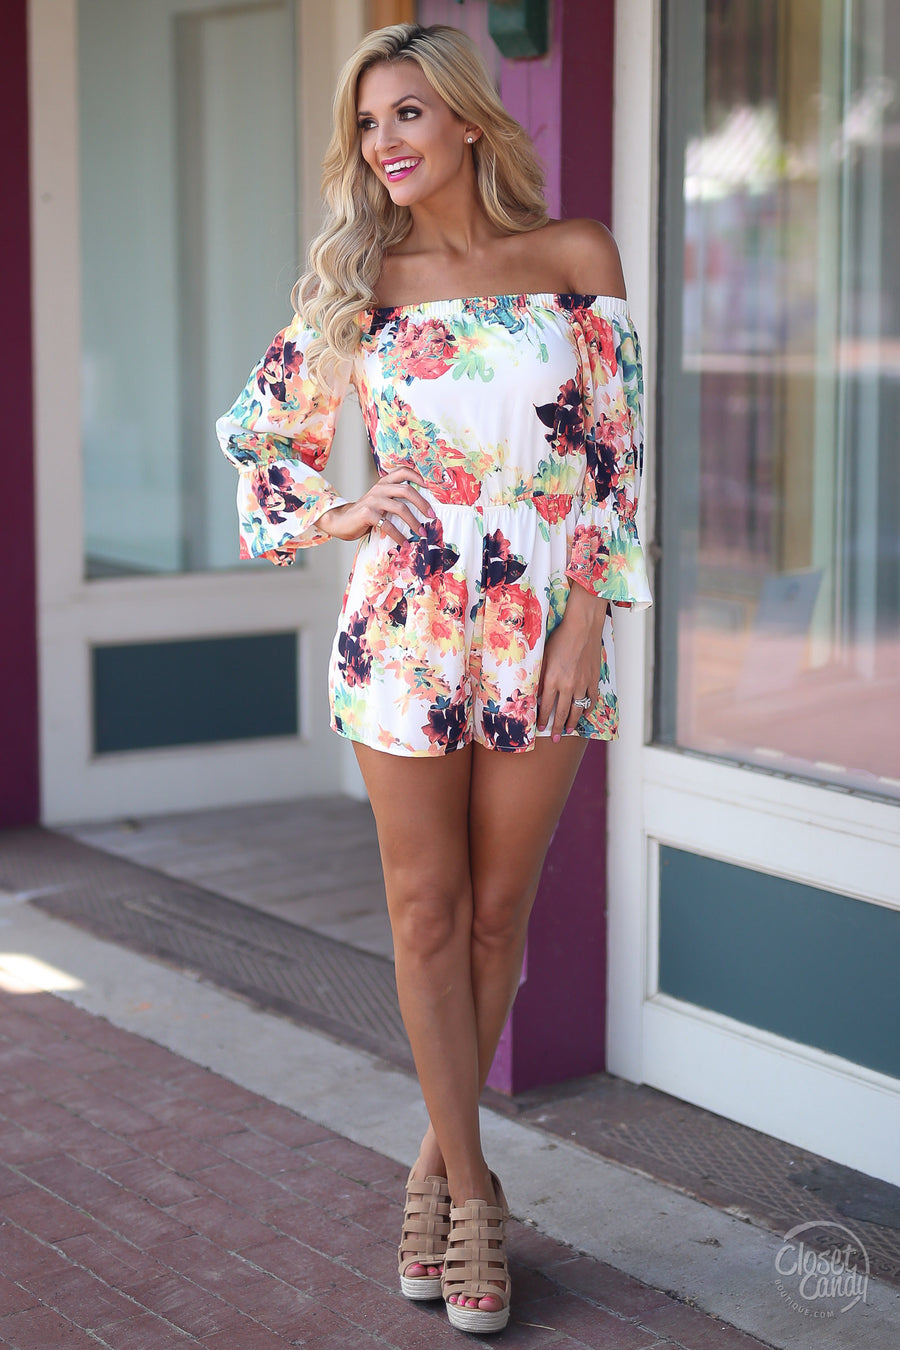 Sunrise & Shine Romper - Ivory colorful off shoulder womens romper summer style closet candy boutique